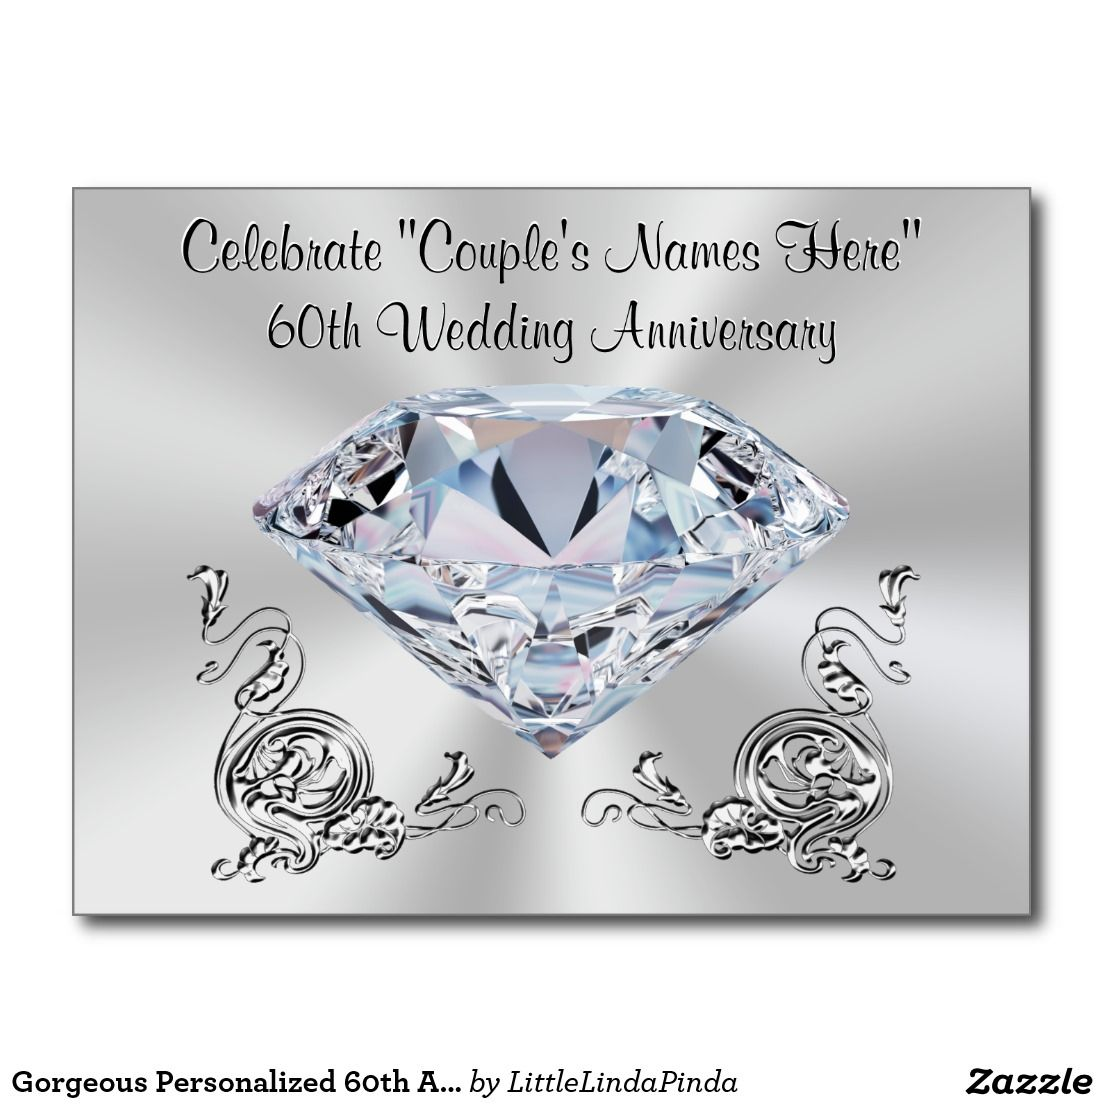 Gorgeous Personalized 60th Anniversary Invitations   Pinterest ...